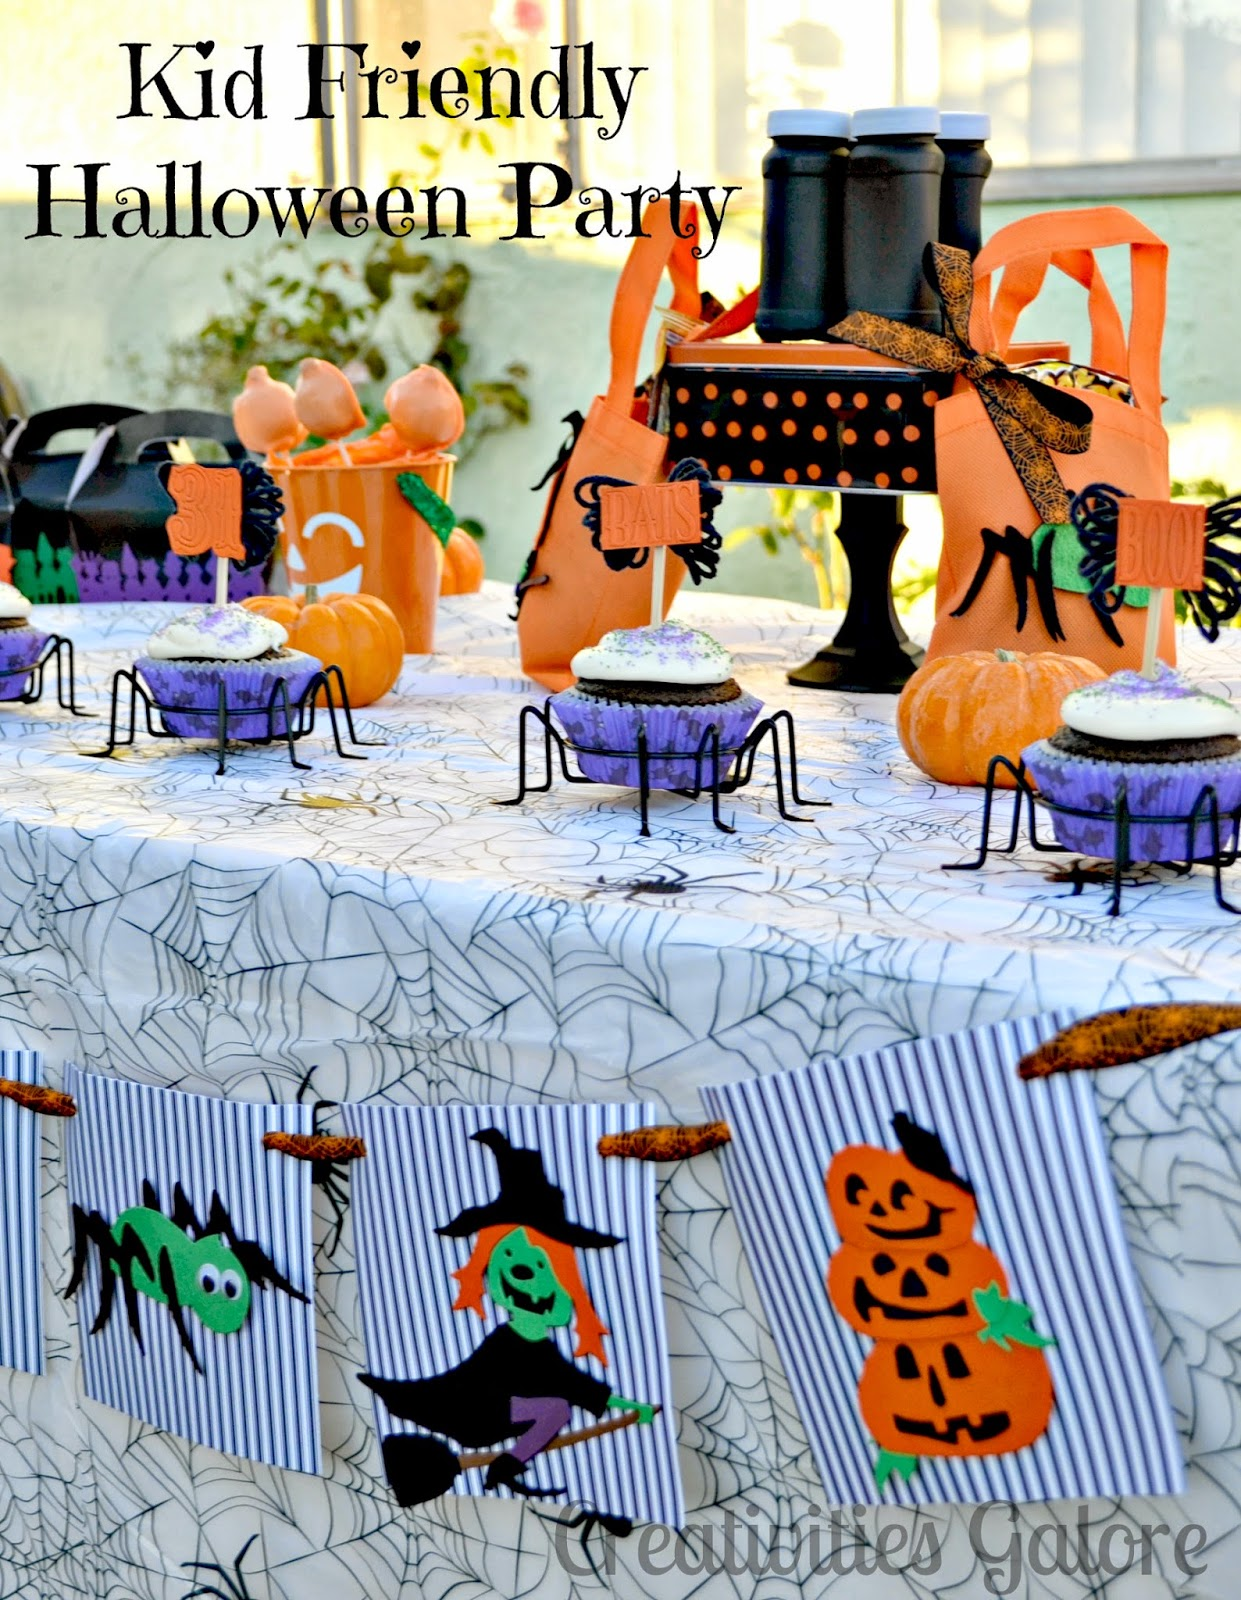 Creativities Galore: Kid Friendly Halloween Party